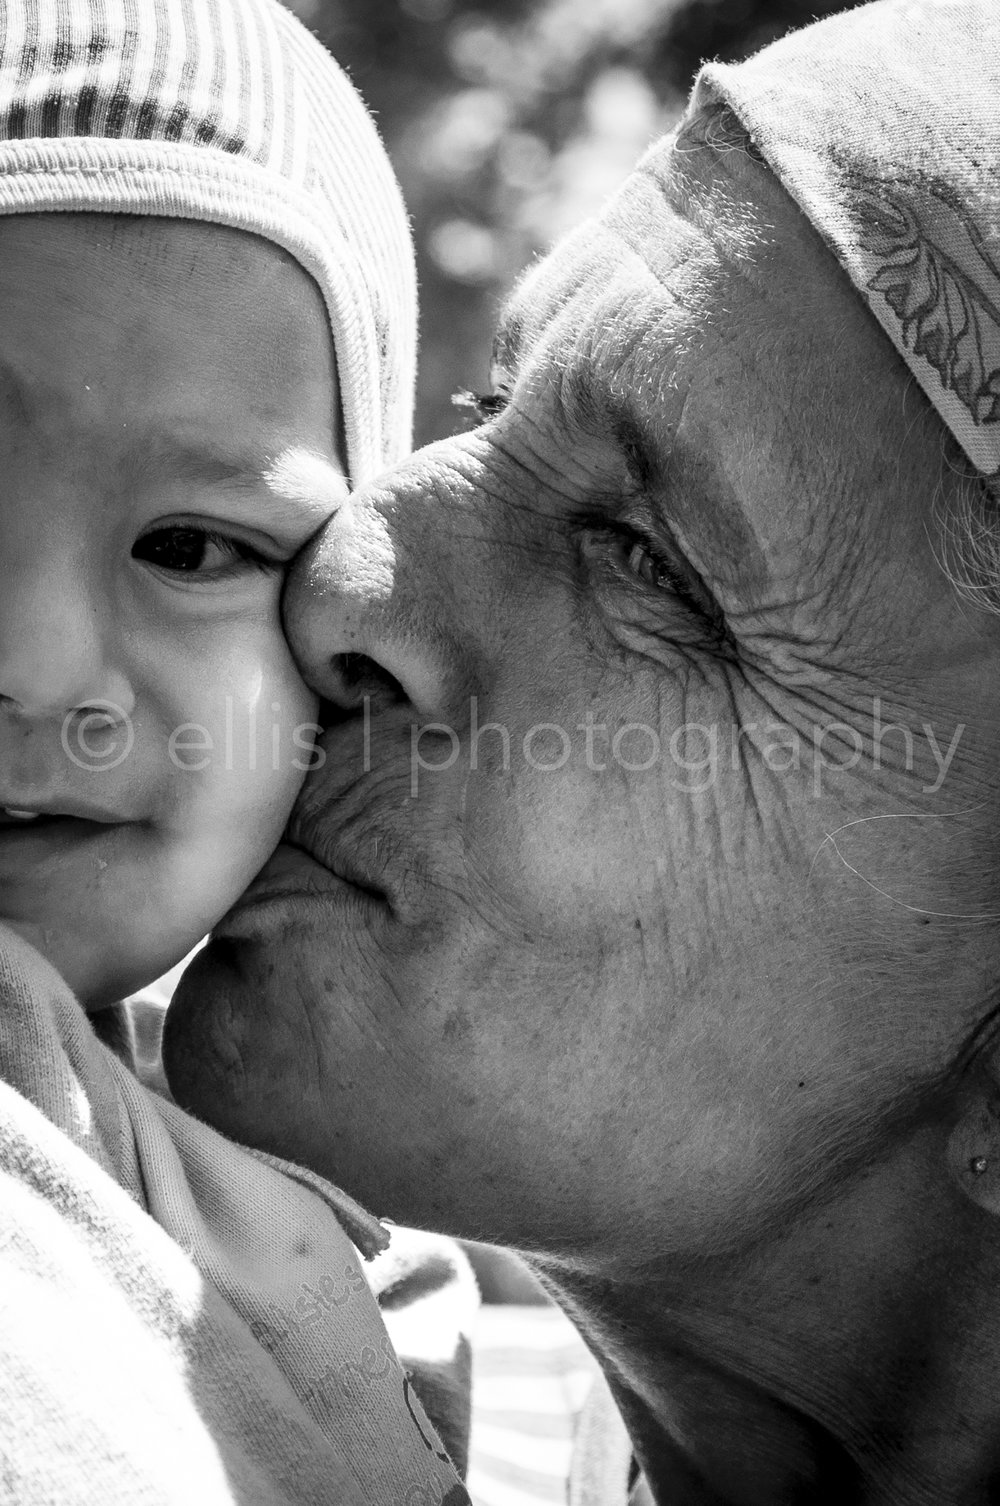 close-up portrait of an gipsy grandma with her grandchild. Grandma is giving her grandchild a kiss on the cheek. Ellis Photography